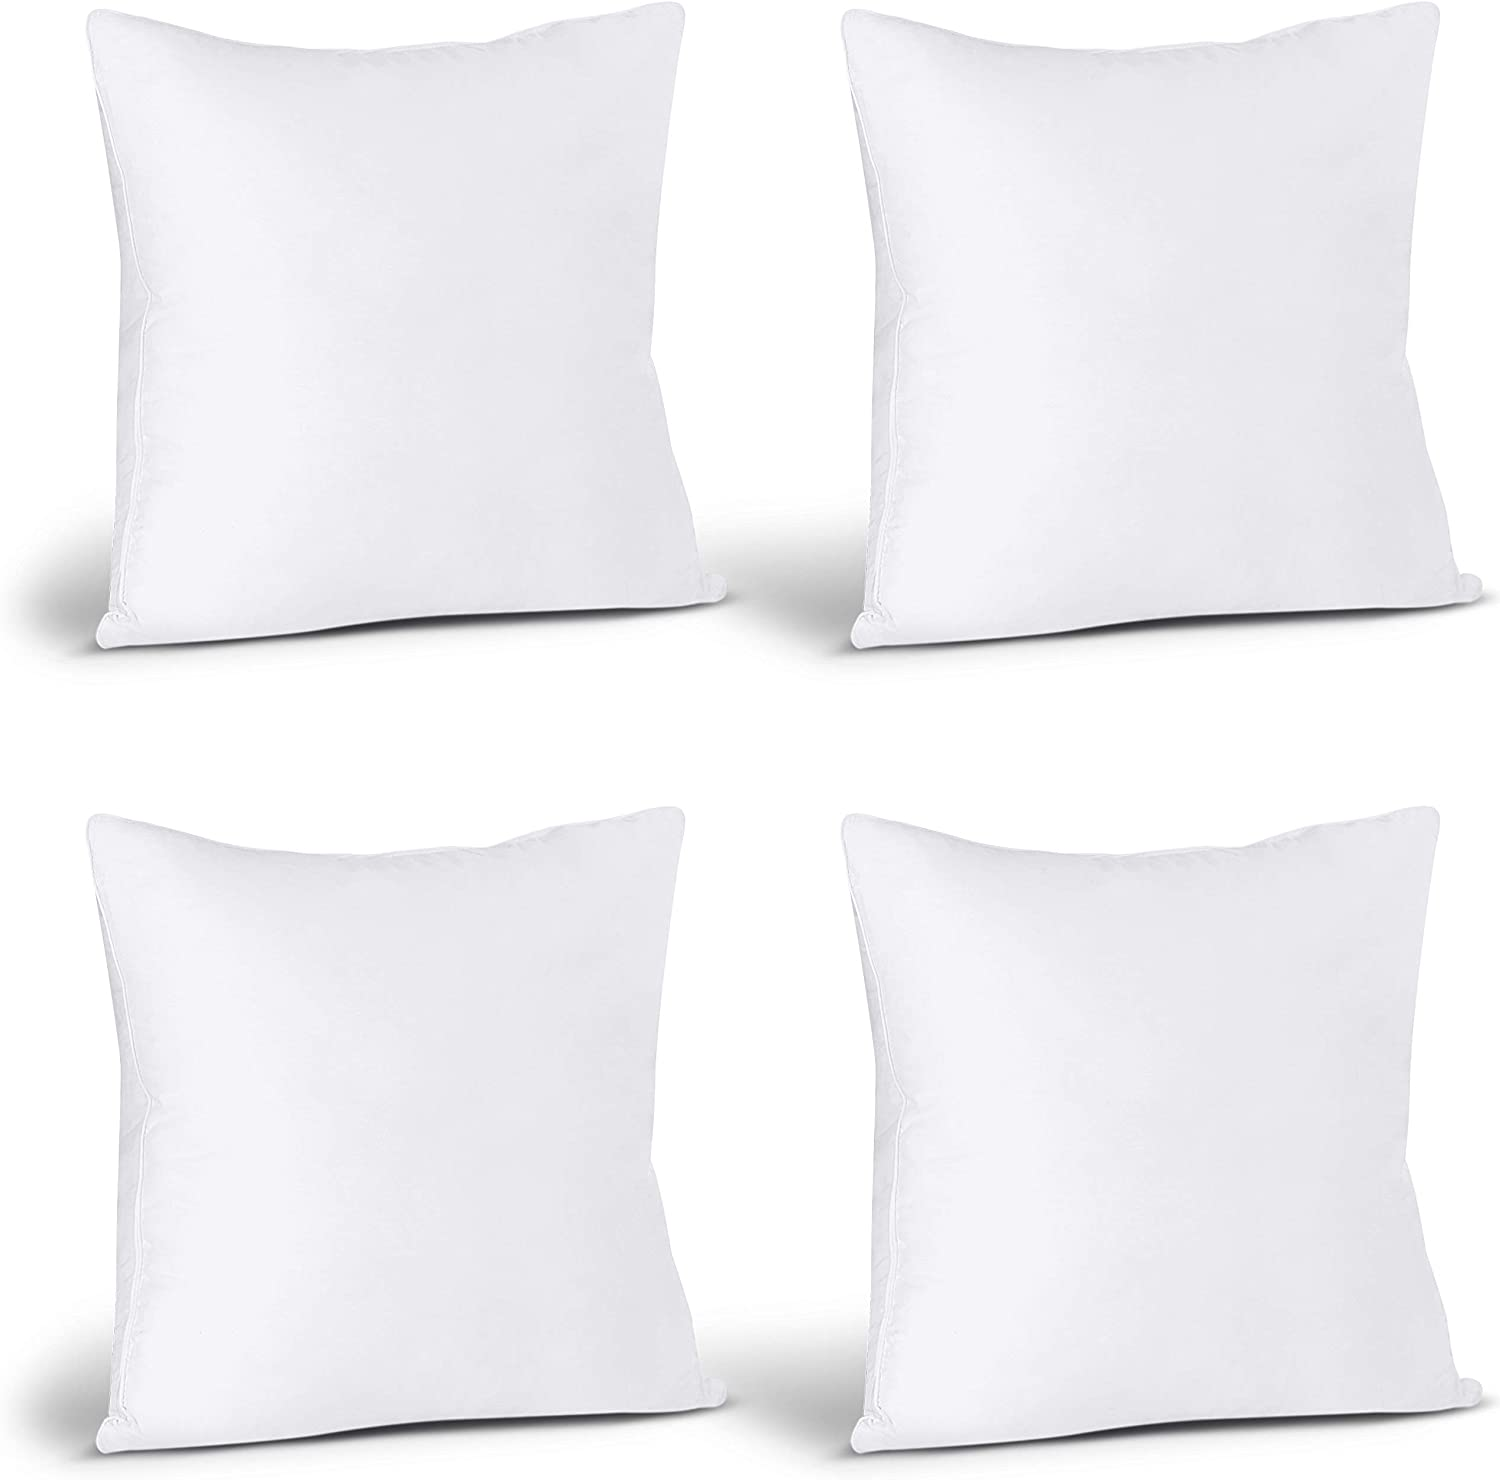 Utopia Bedding Throw Pillows Insert (Pack of 4, White) - 18 x 18 Inches Bed and Couch Pillows - Indoor Decorative Pillows: Home & Kitchen